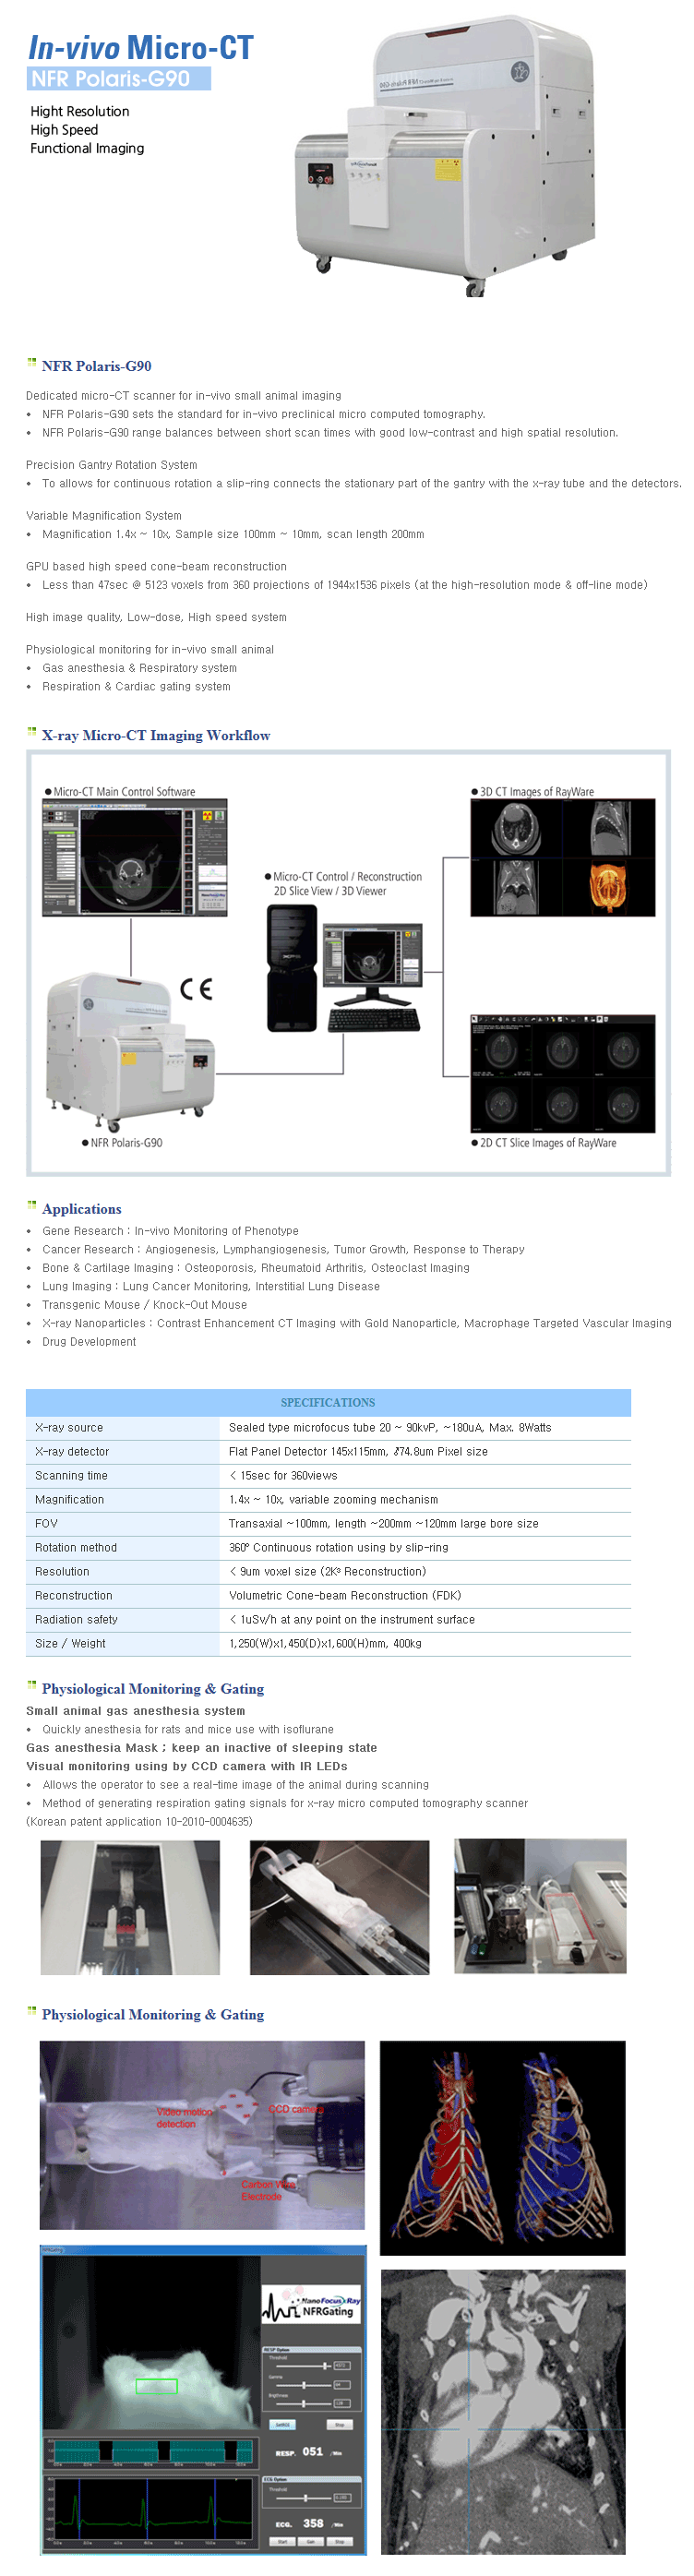 NanoFocusRay - Micro-CT - NFR Polaris-G90 - Medical, Pre-clinical